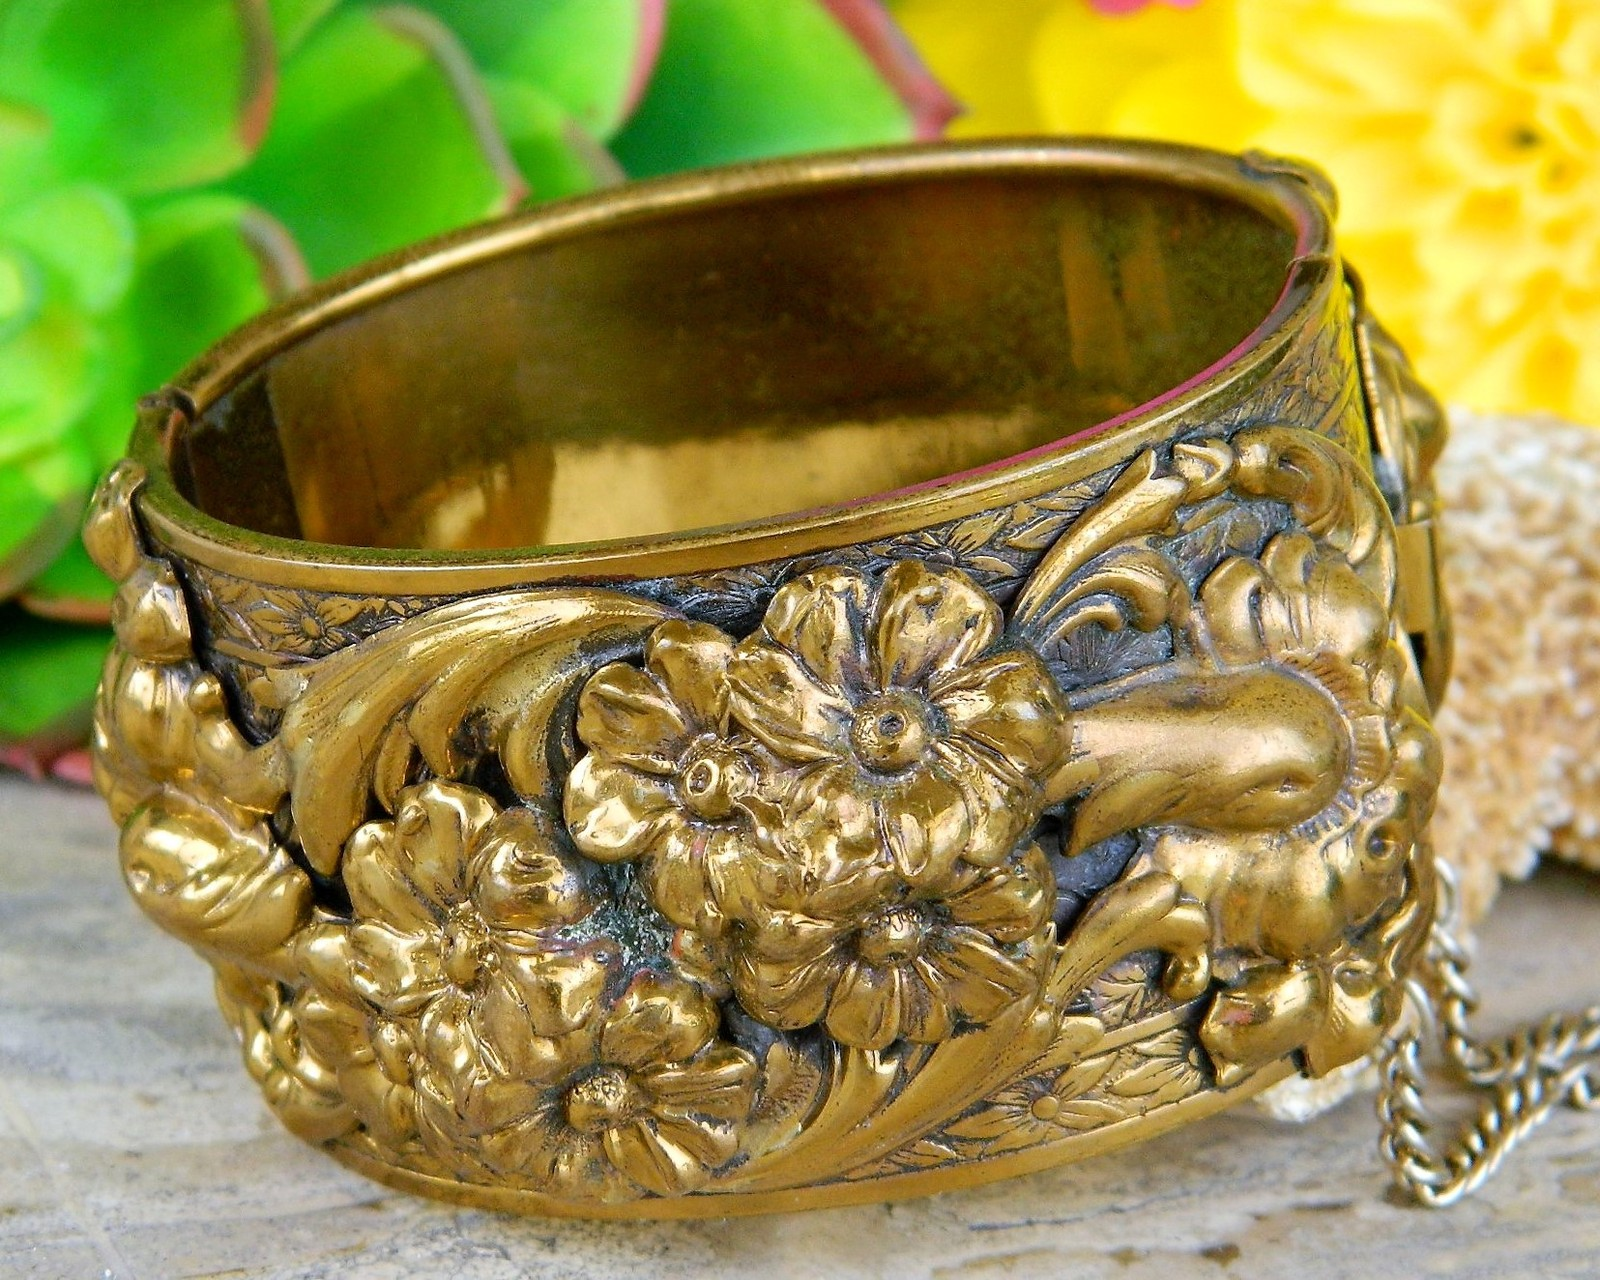 Primary image for Vintage Hinged Cuff Bangle Bracelet Ornate Gold Brass Flowers Floral